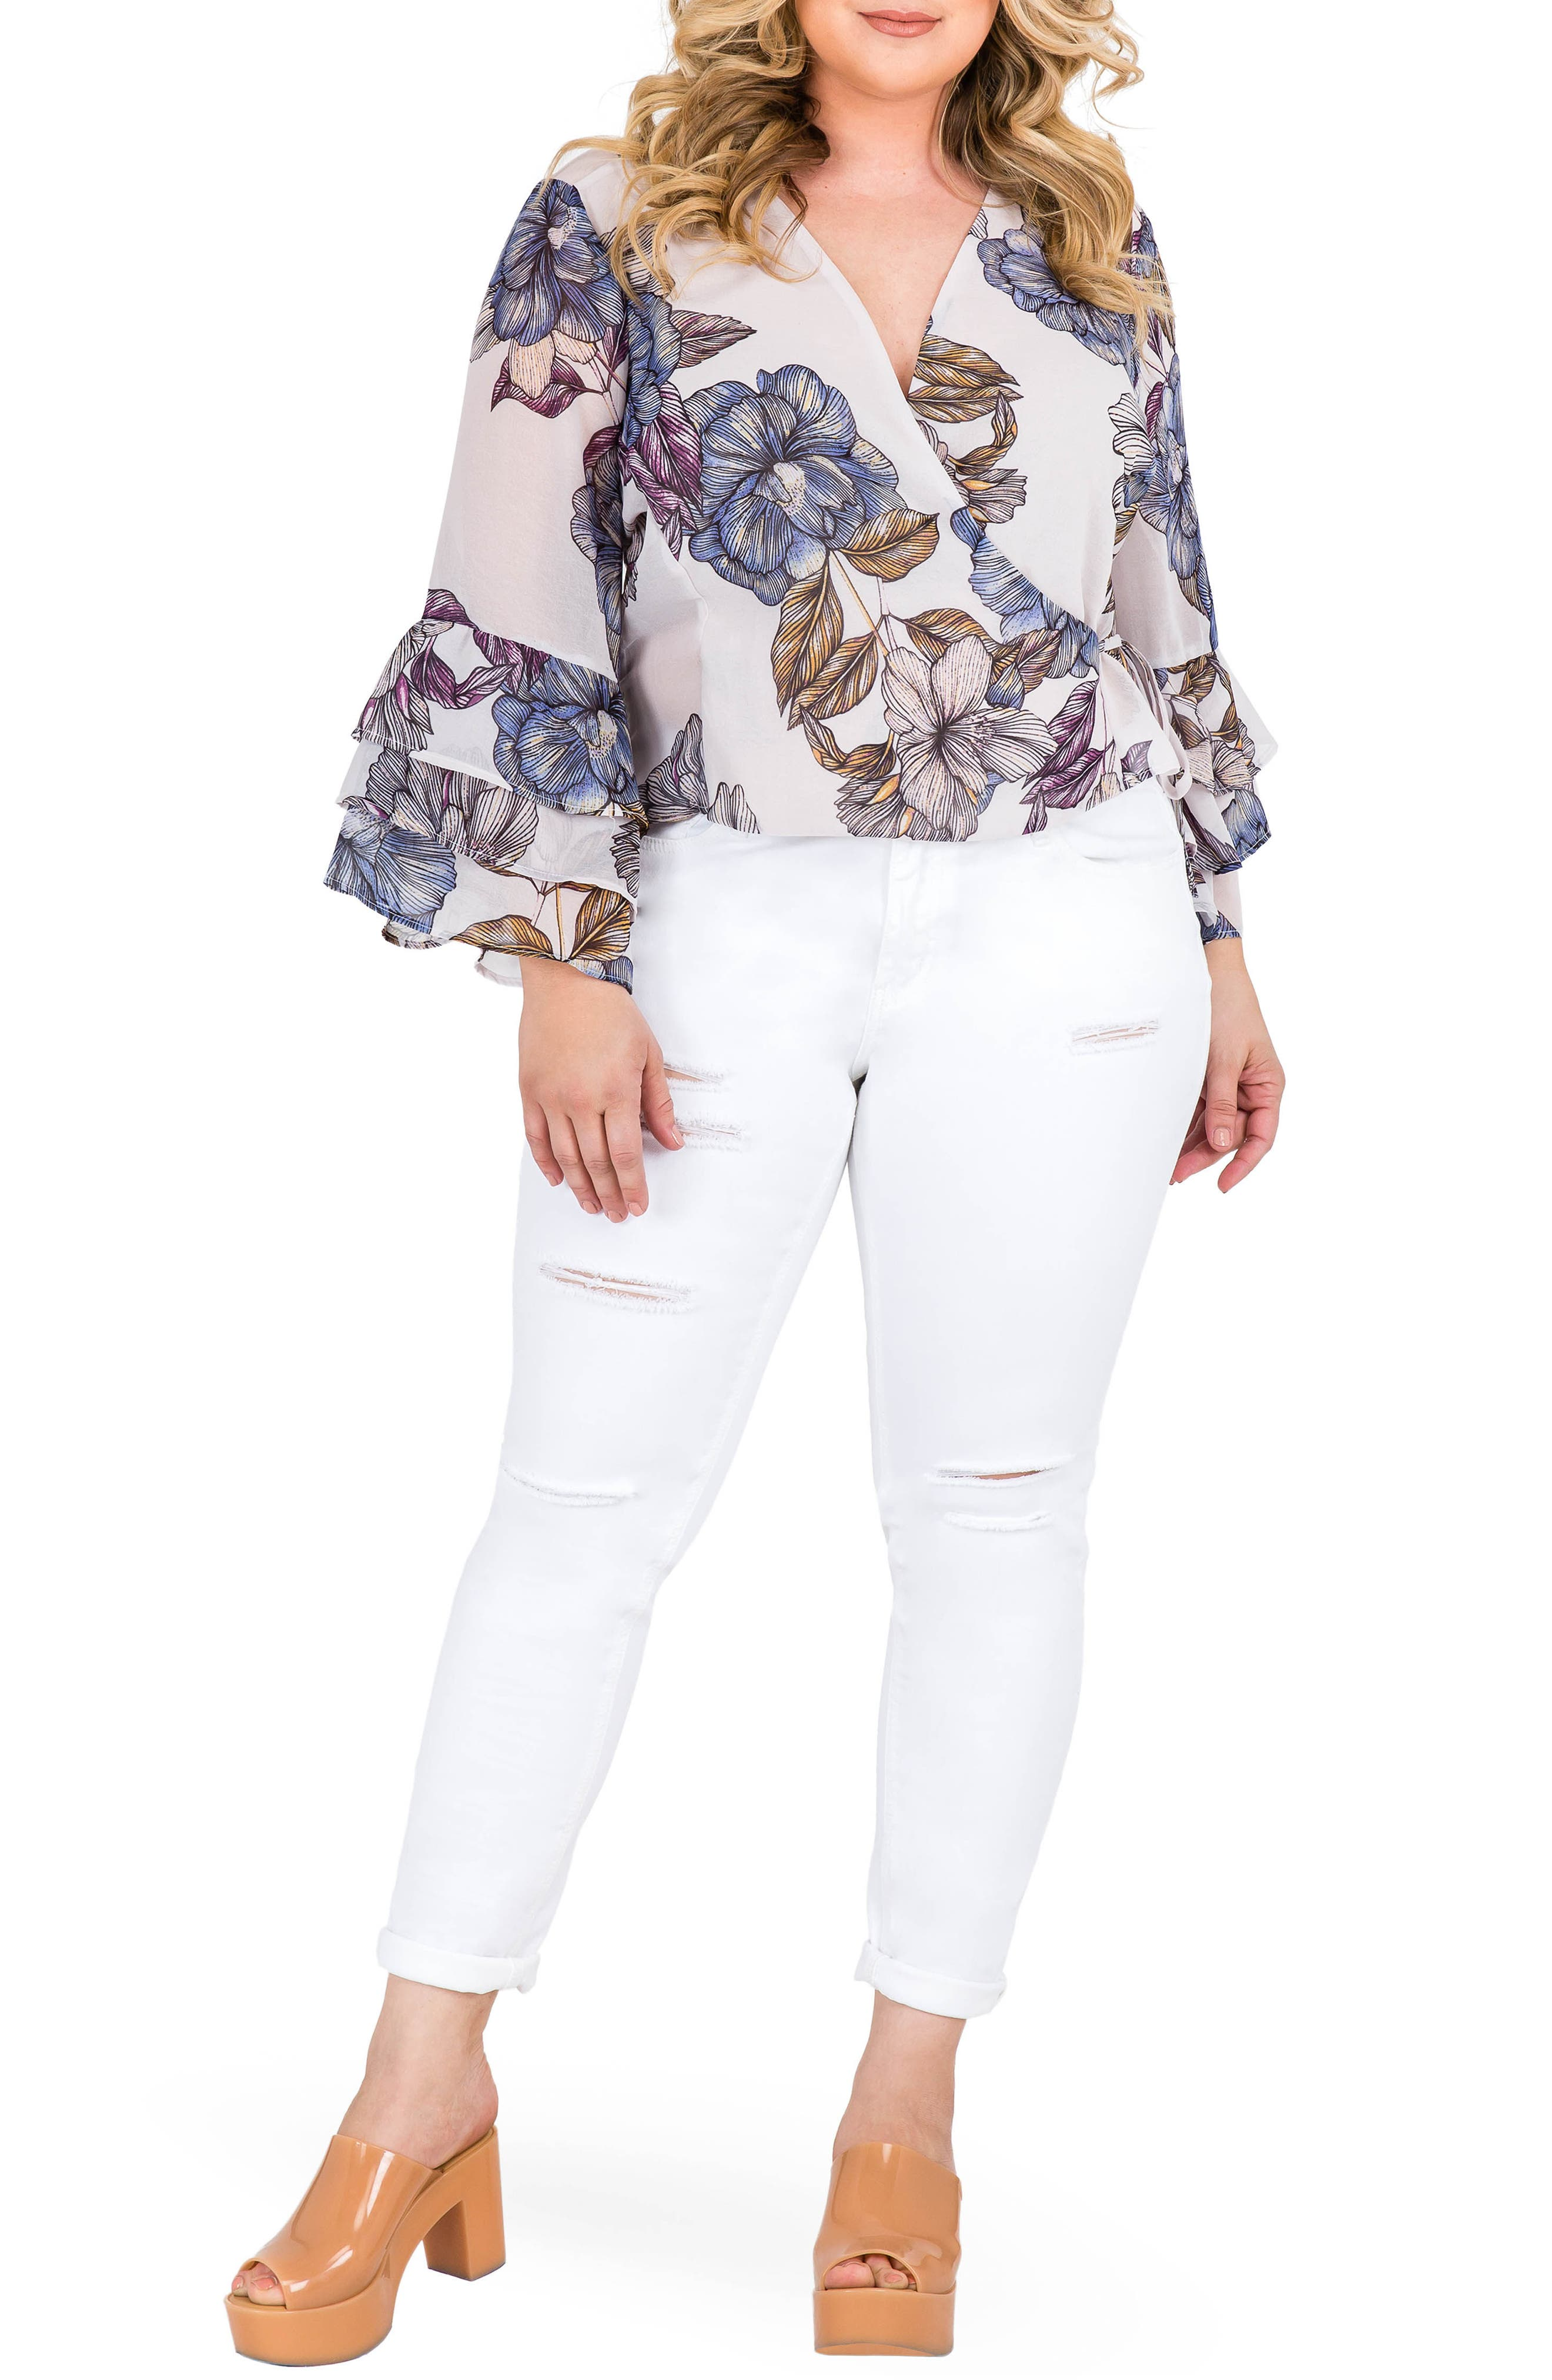 Miley Bell Sleeve Floral Wrap Top,                             Alternate thumbnail 3, color,                             Light Gray Floral Print